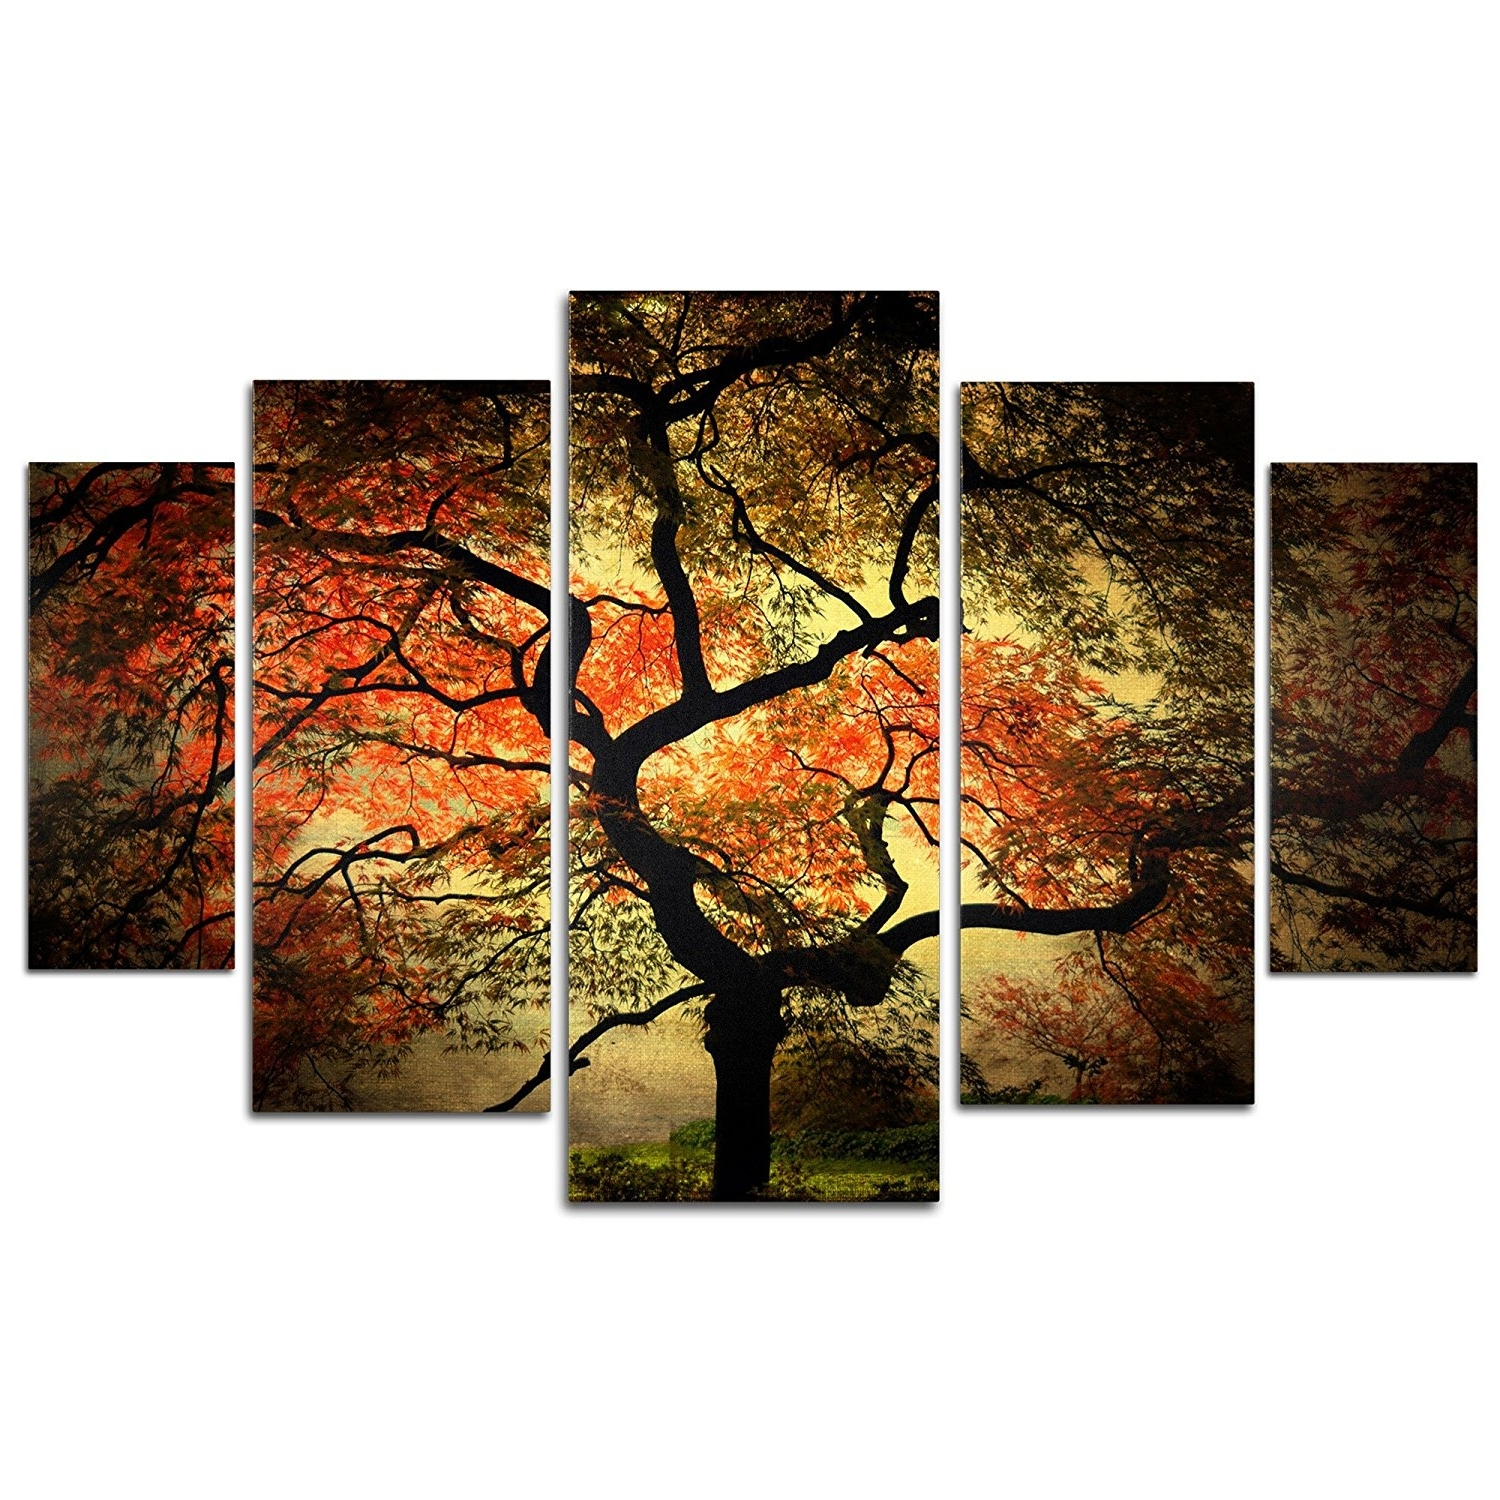 Newest Multi Panel Wall Art Intended For Bjinj Epic Panel Wall Art – Wall Decoration And Wall Art Ideas (View 13 of 15)